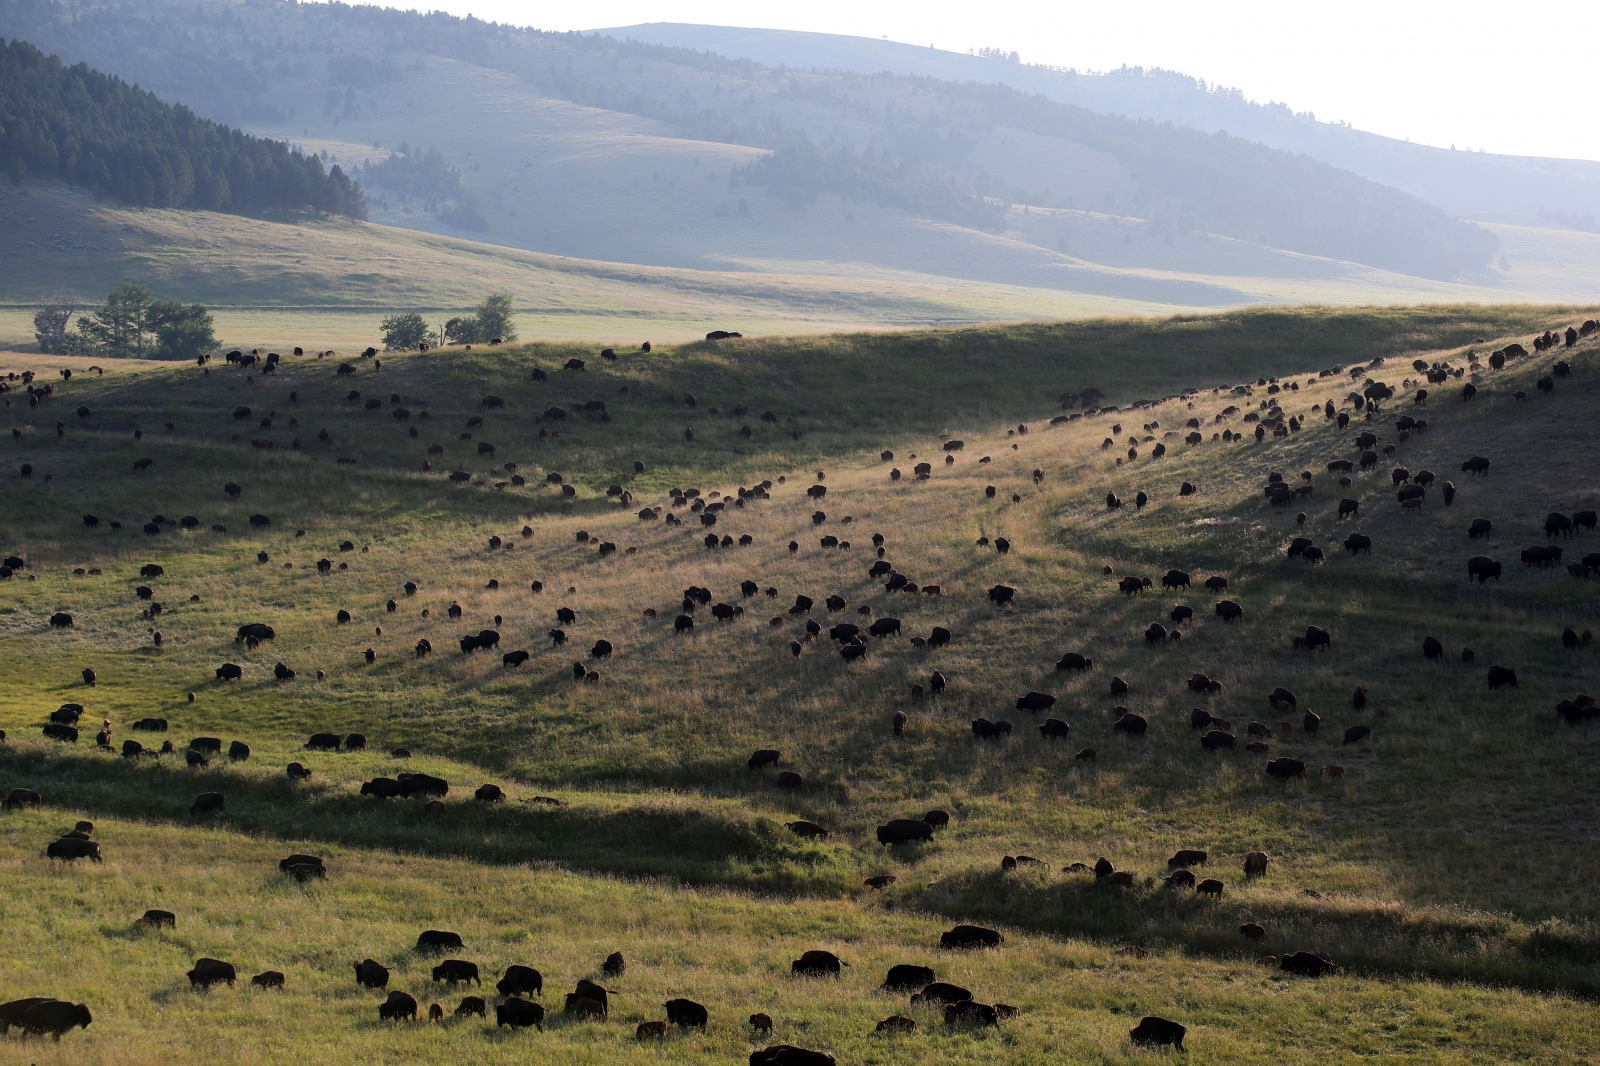 A portion of the Flying D's Ranch 5,000-head bison herd near Bozeman.